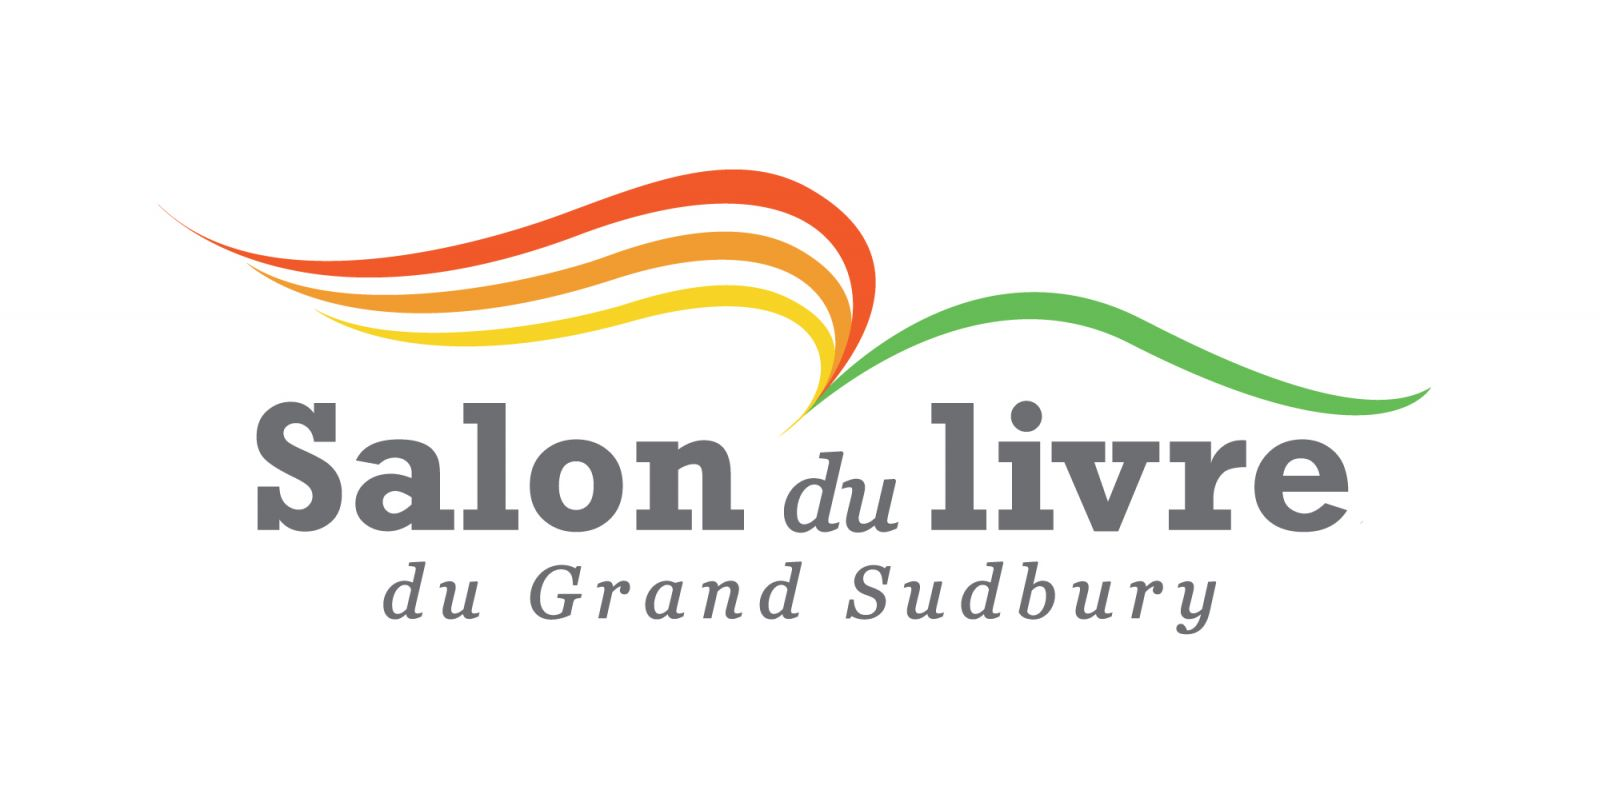 Logo of the Salon du livre du Grand Sudbury